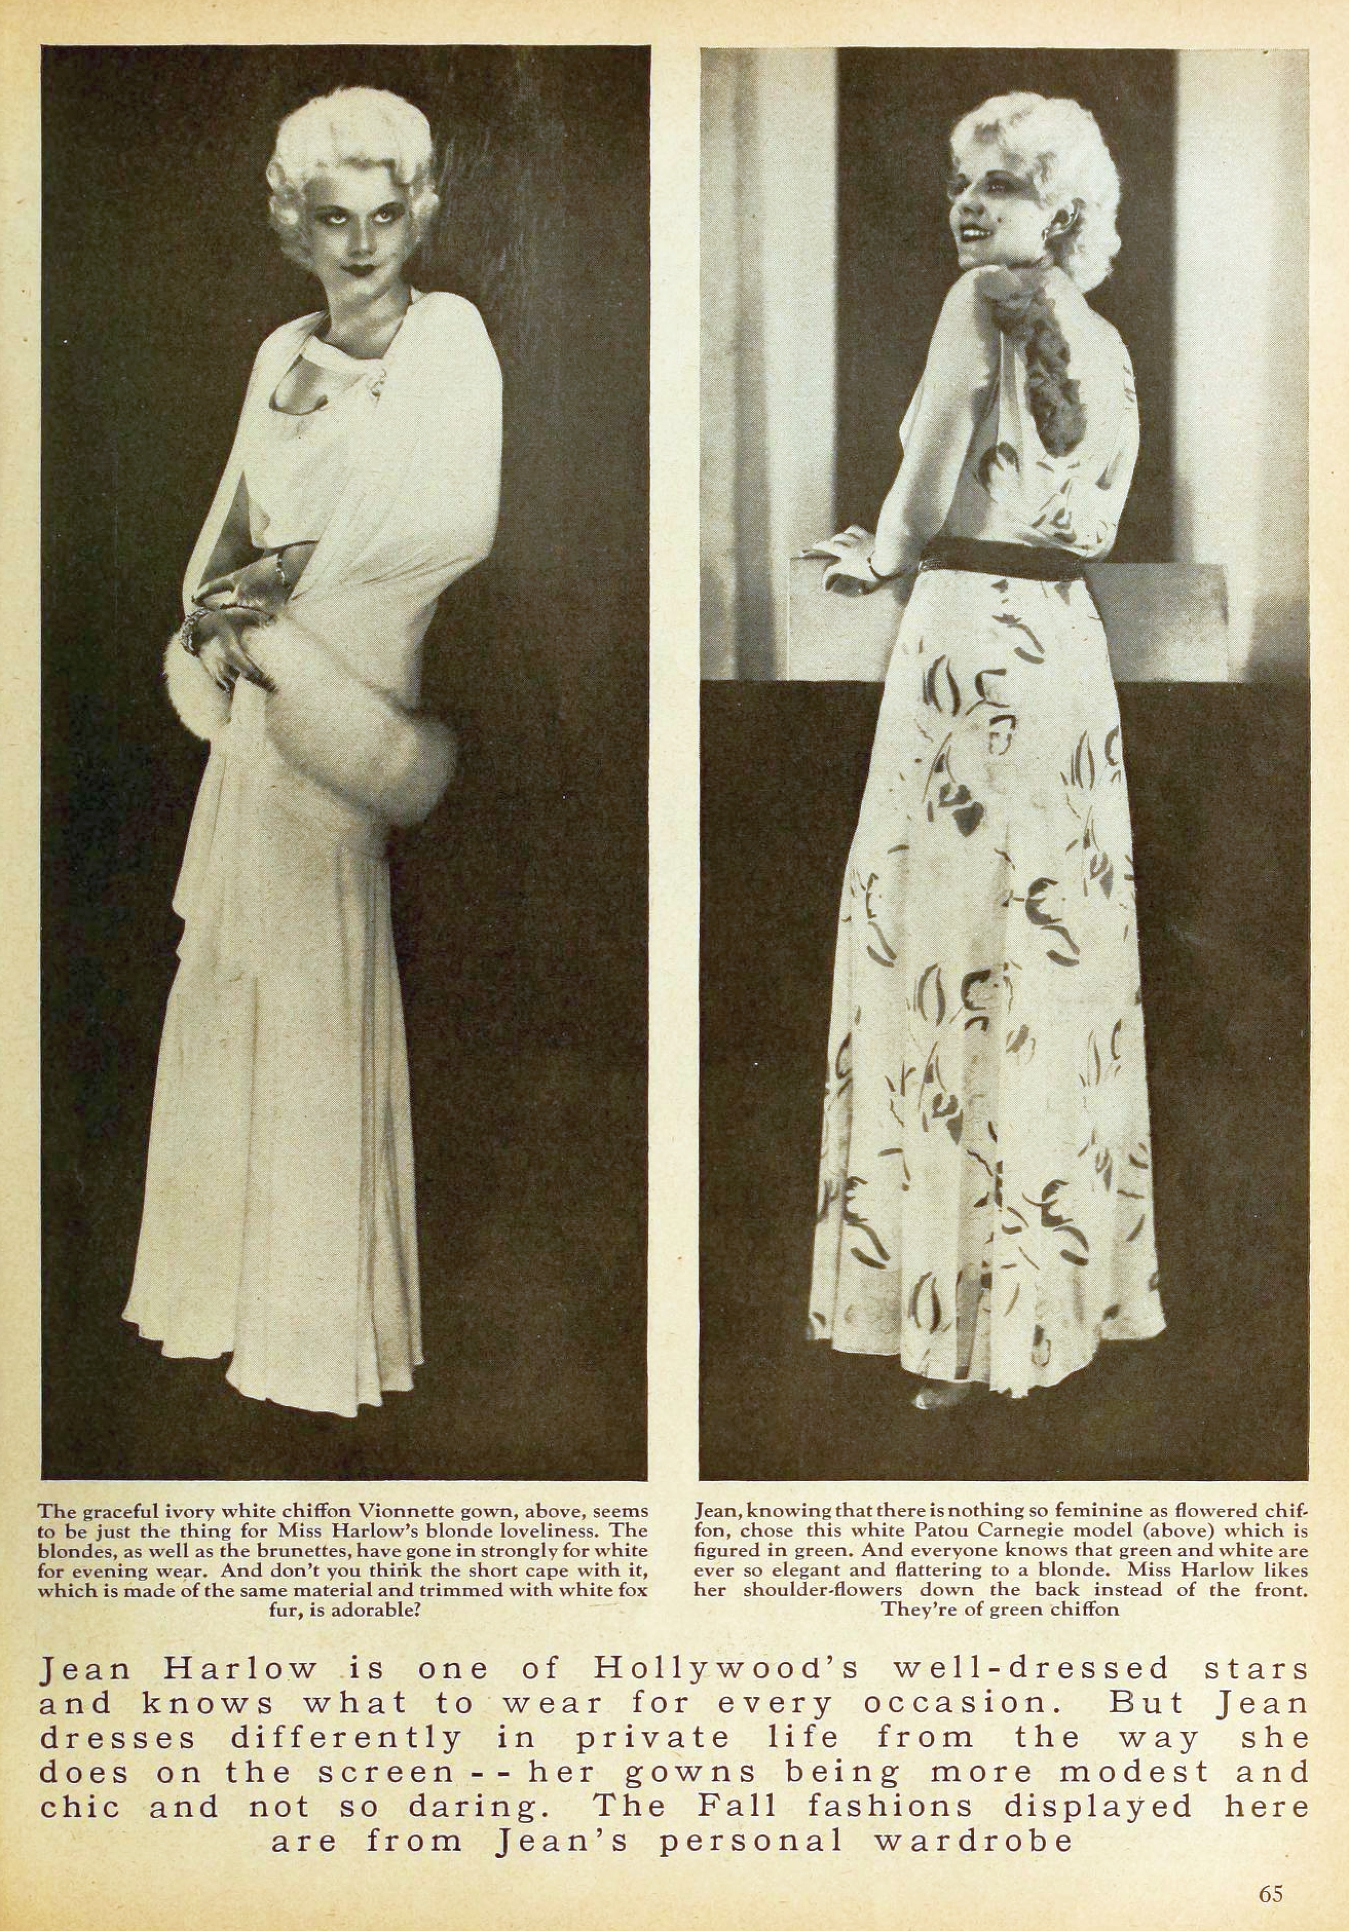 jean harlow motion picture october 1931 fall fashions 01a